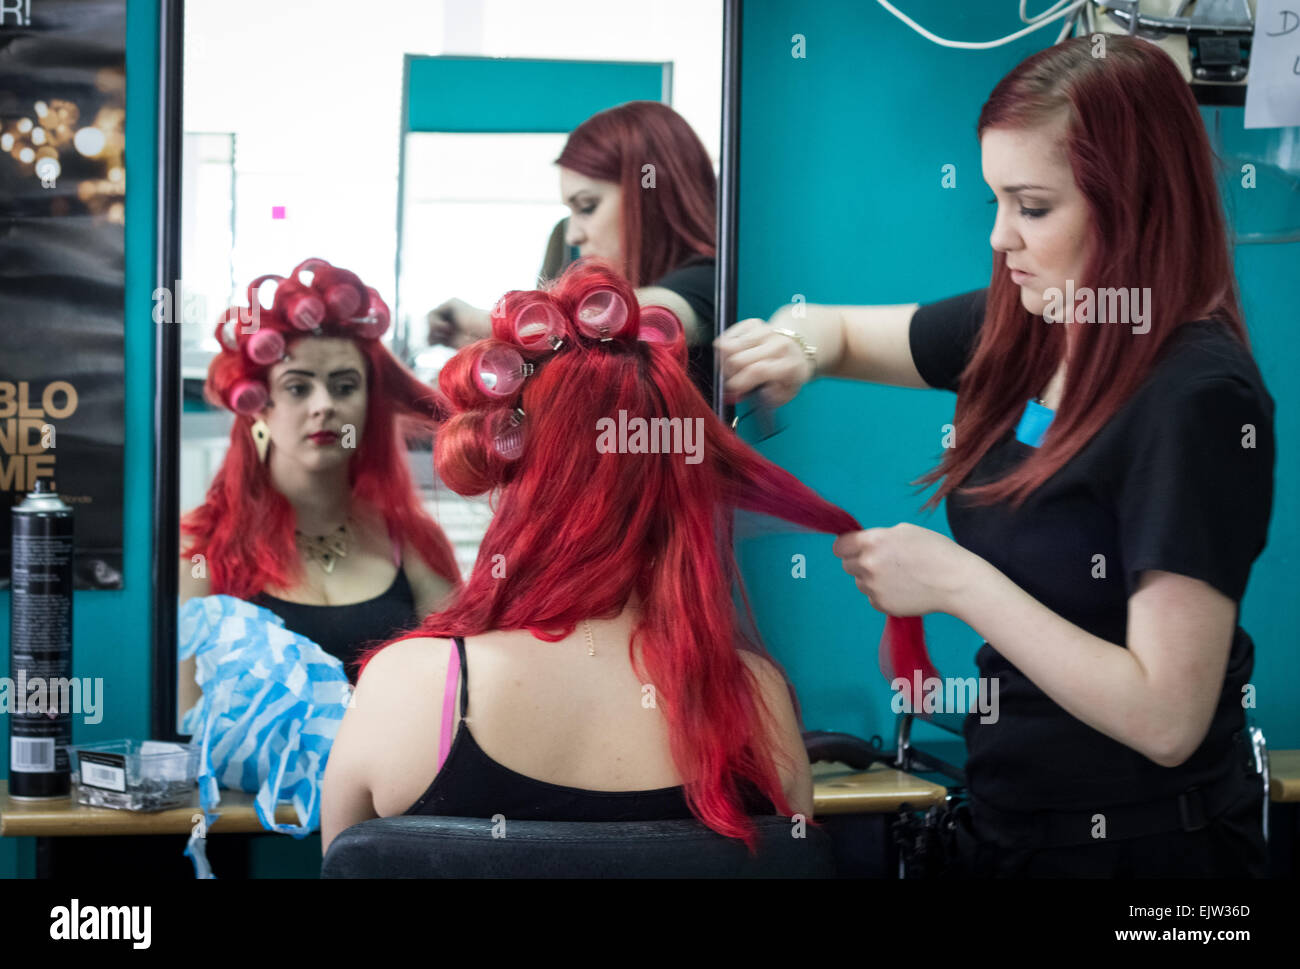 Female model having her bright red hair done by a hairdresser in a beauty salon for a fashion showcase. - Stock Image